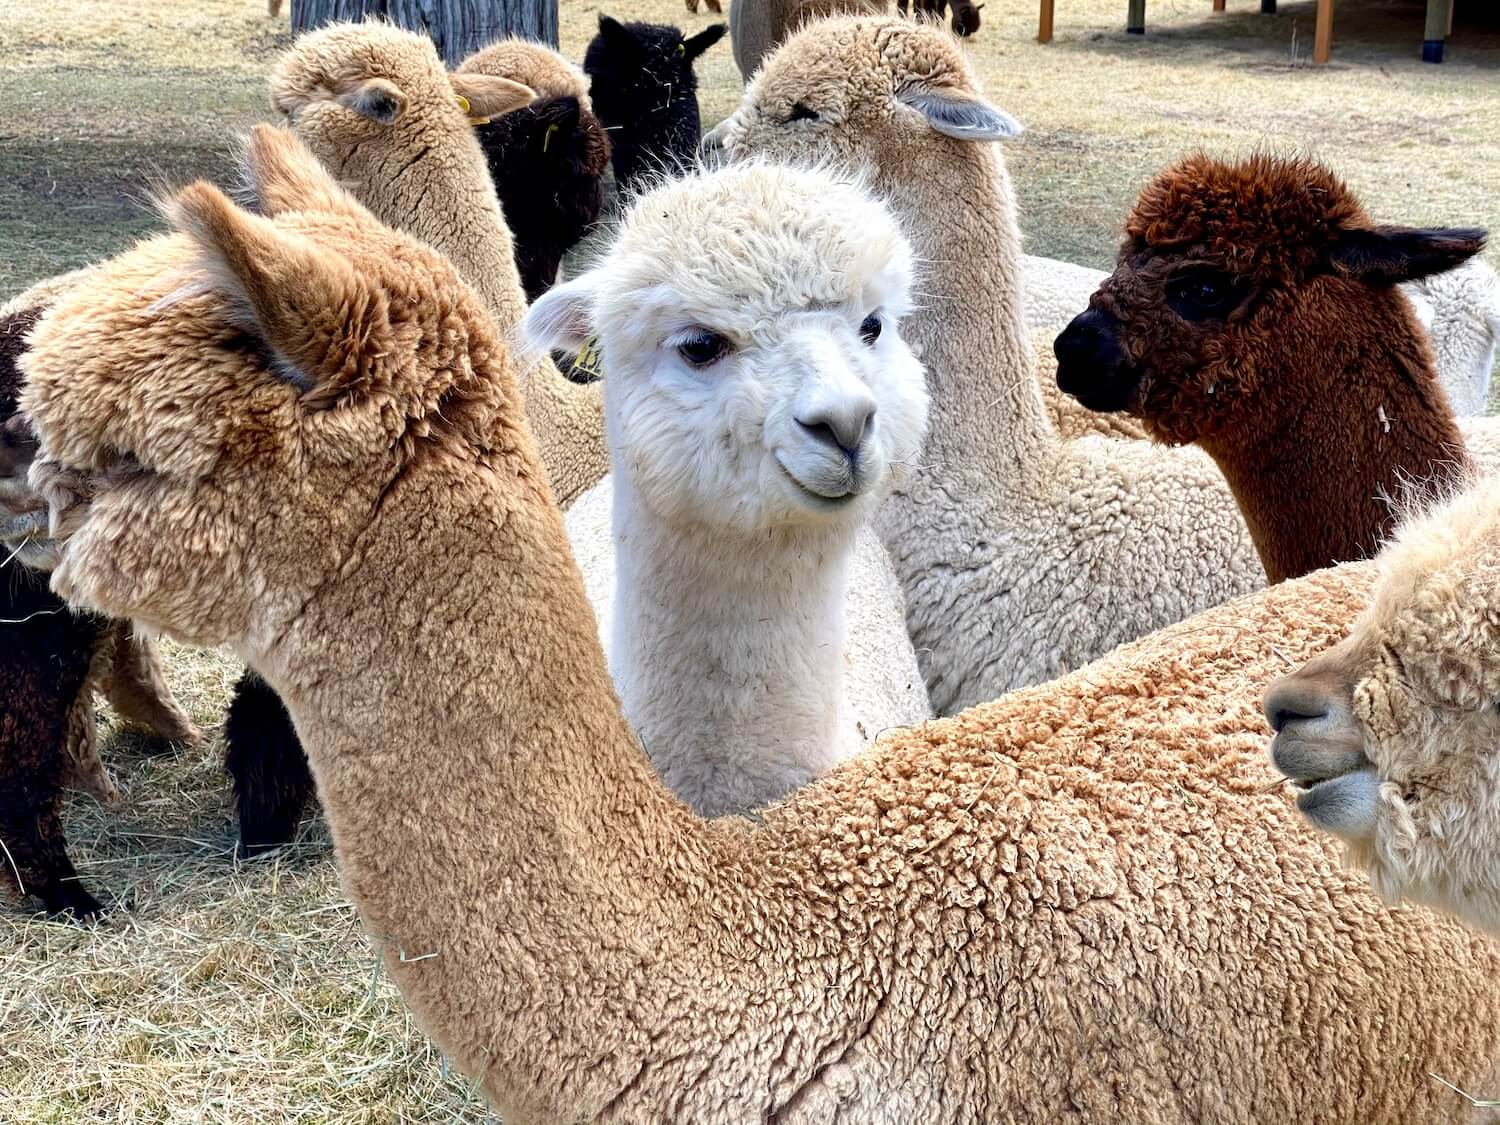 A white alpaca looks forward around other animals of brown and dark brown colors. Visiting an alpaca farm is a fun thing to do in Bend Oregon while visiting Central Oregon.